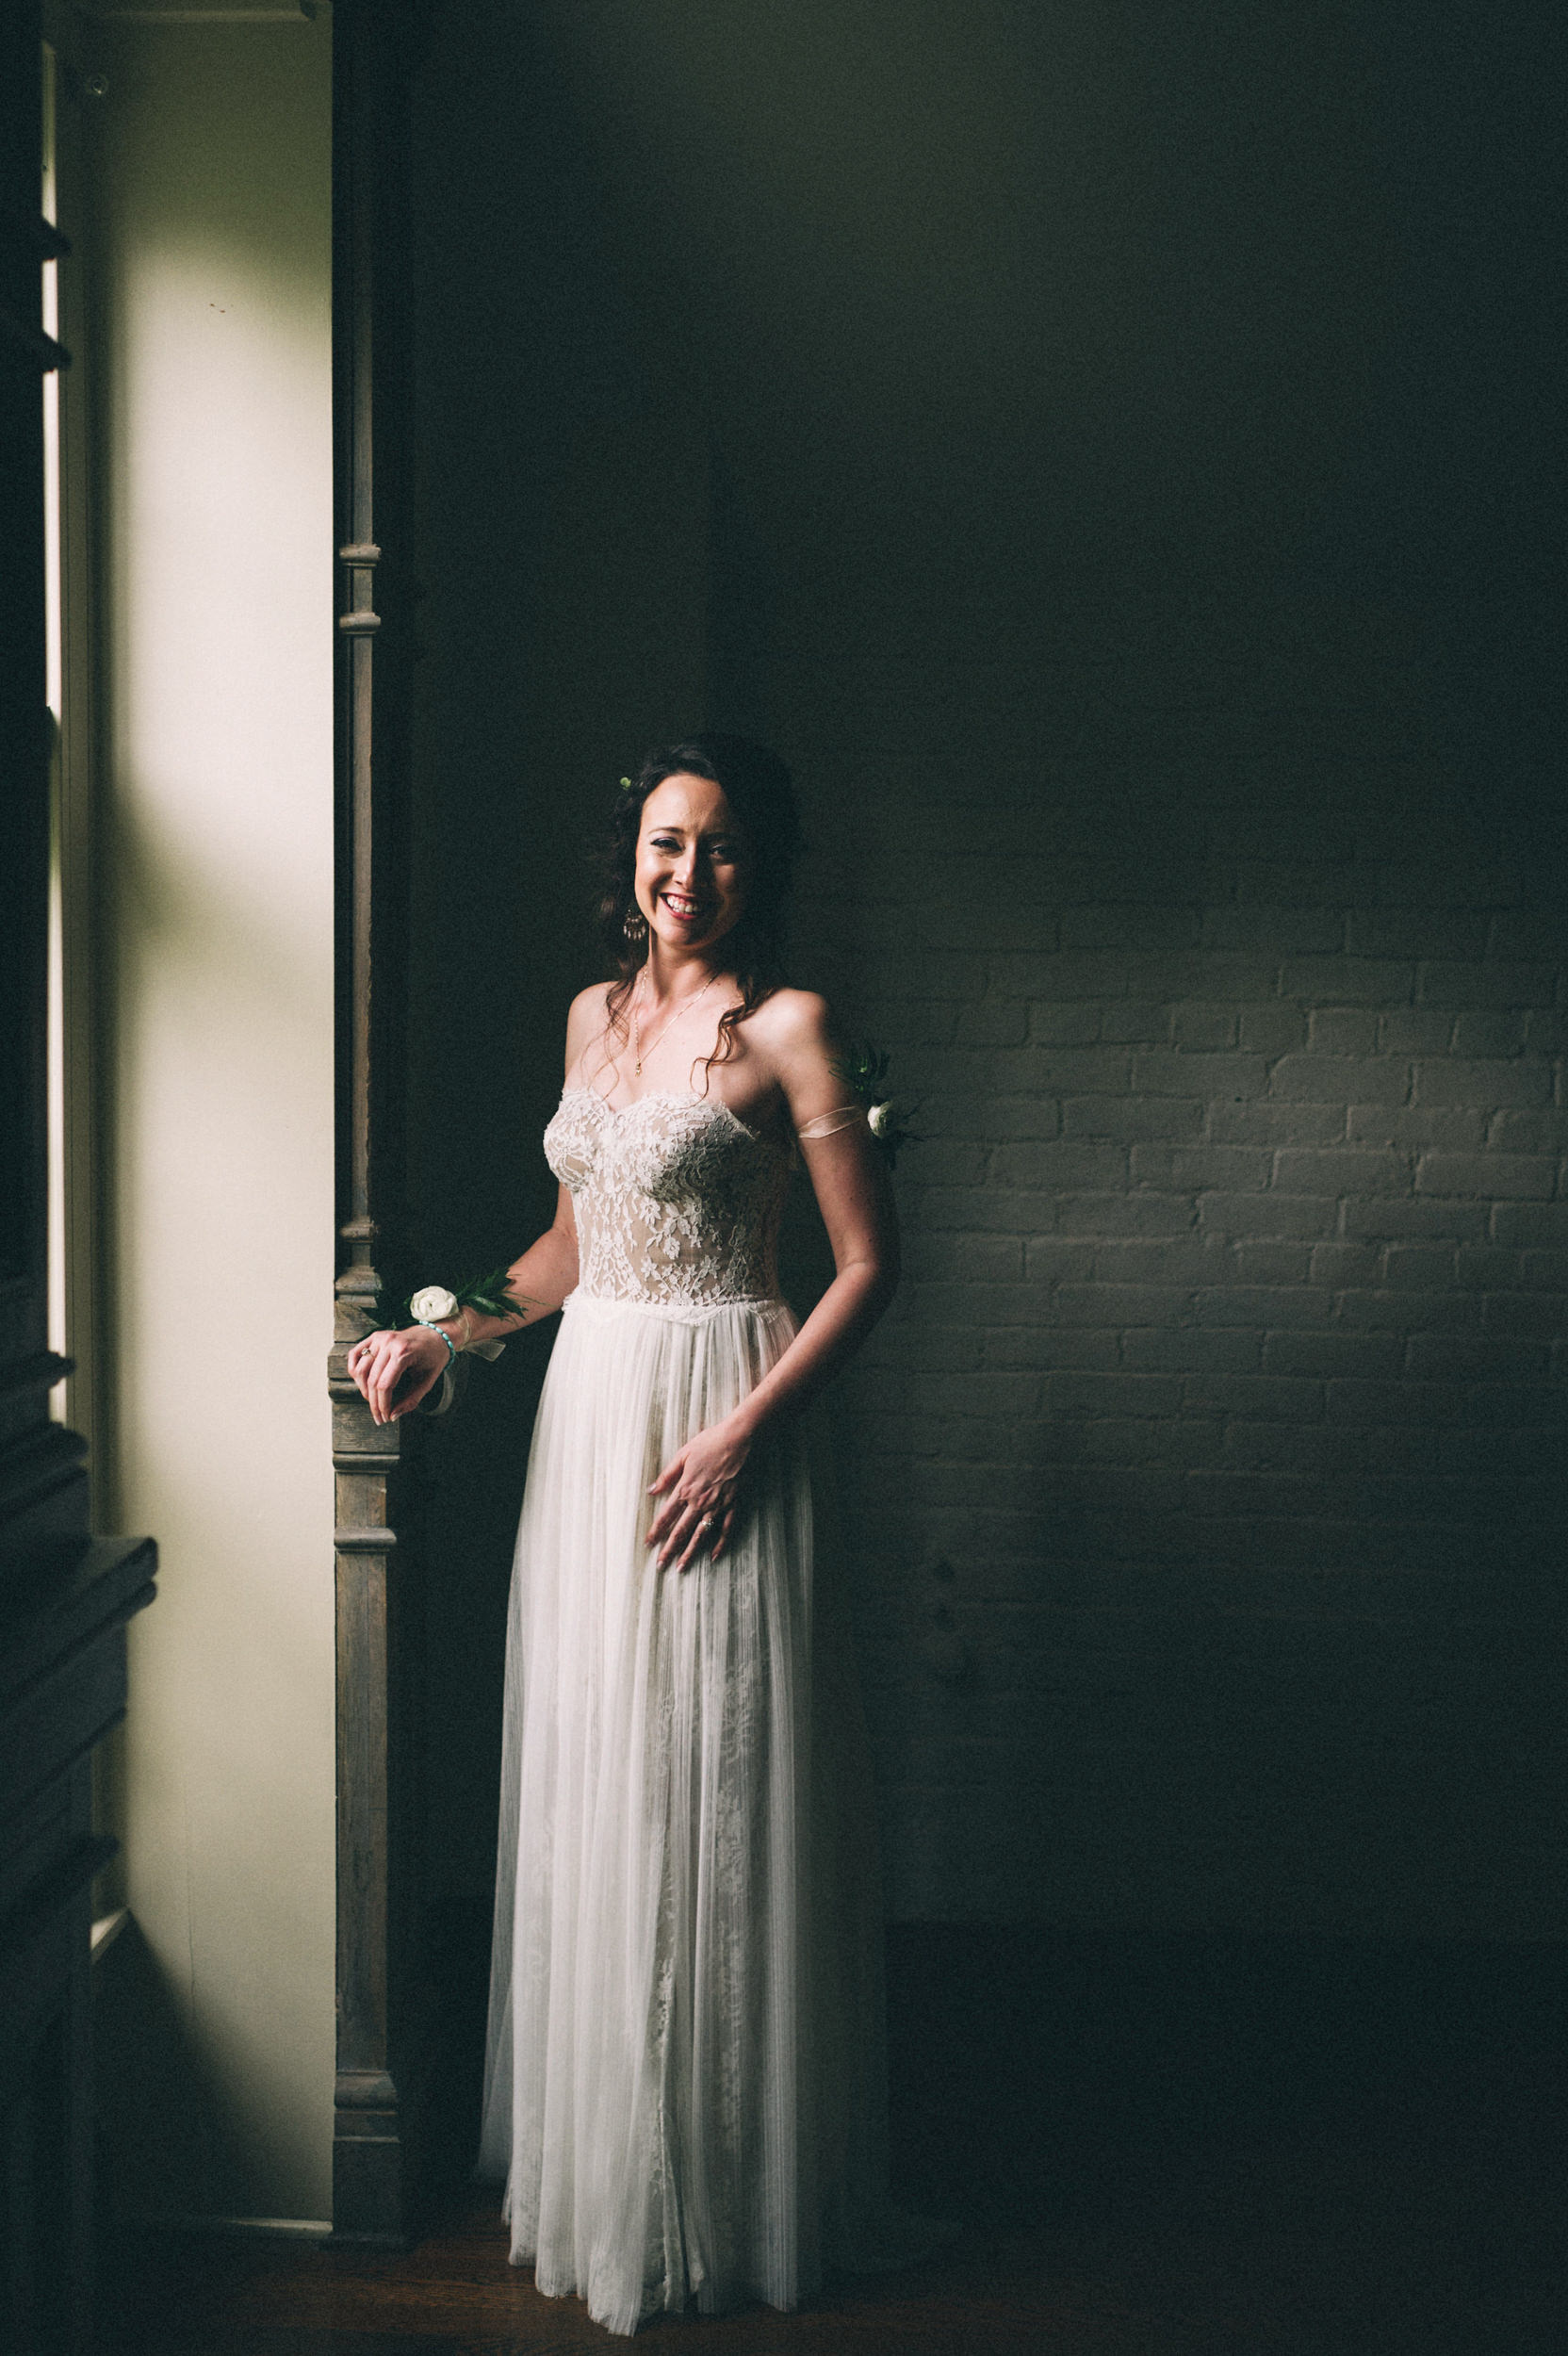 cassie-drew-wedding-farmington-sarah-katherine-davis-photography-167edit.jpg